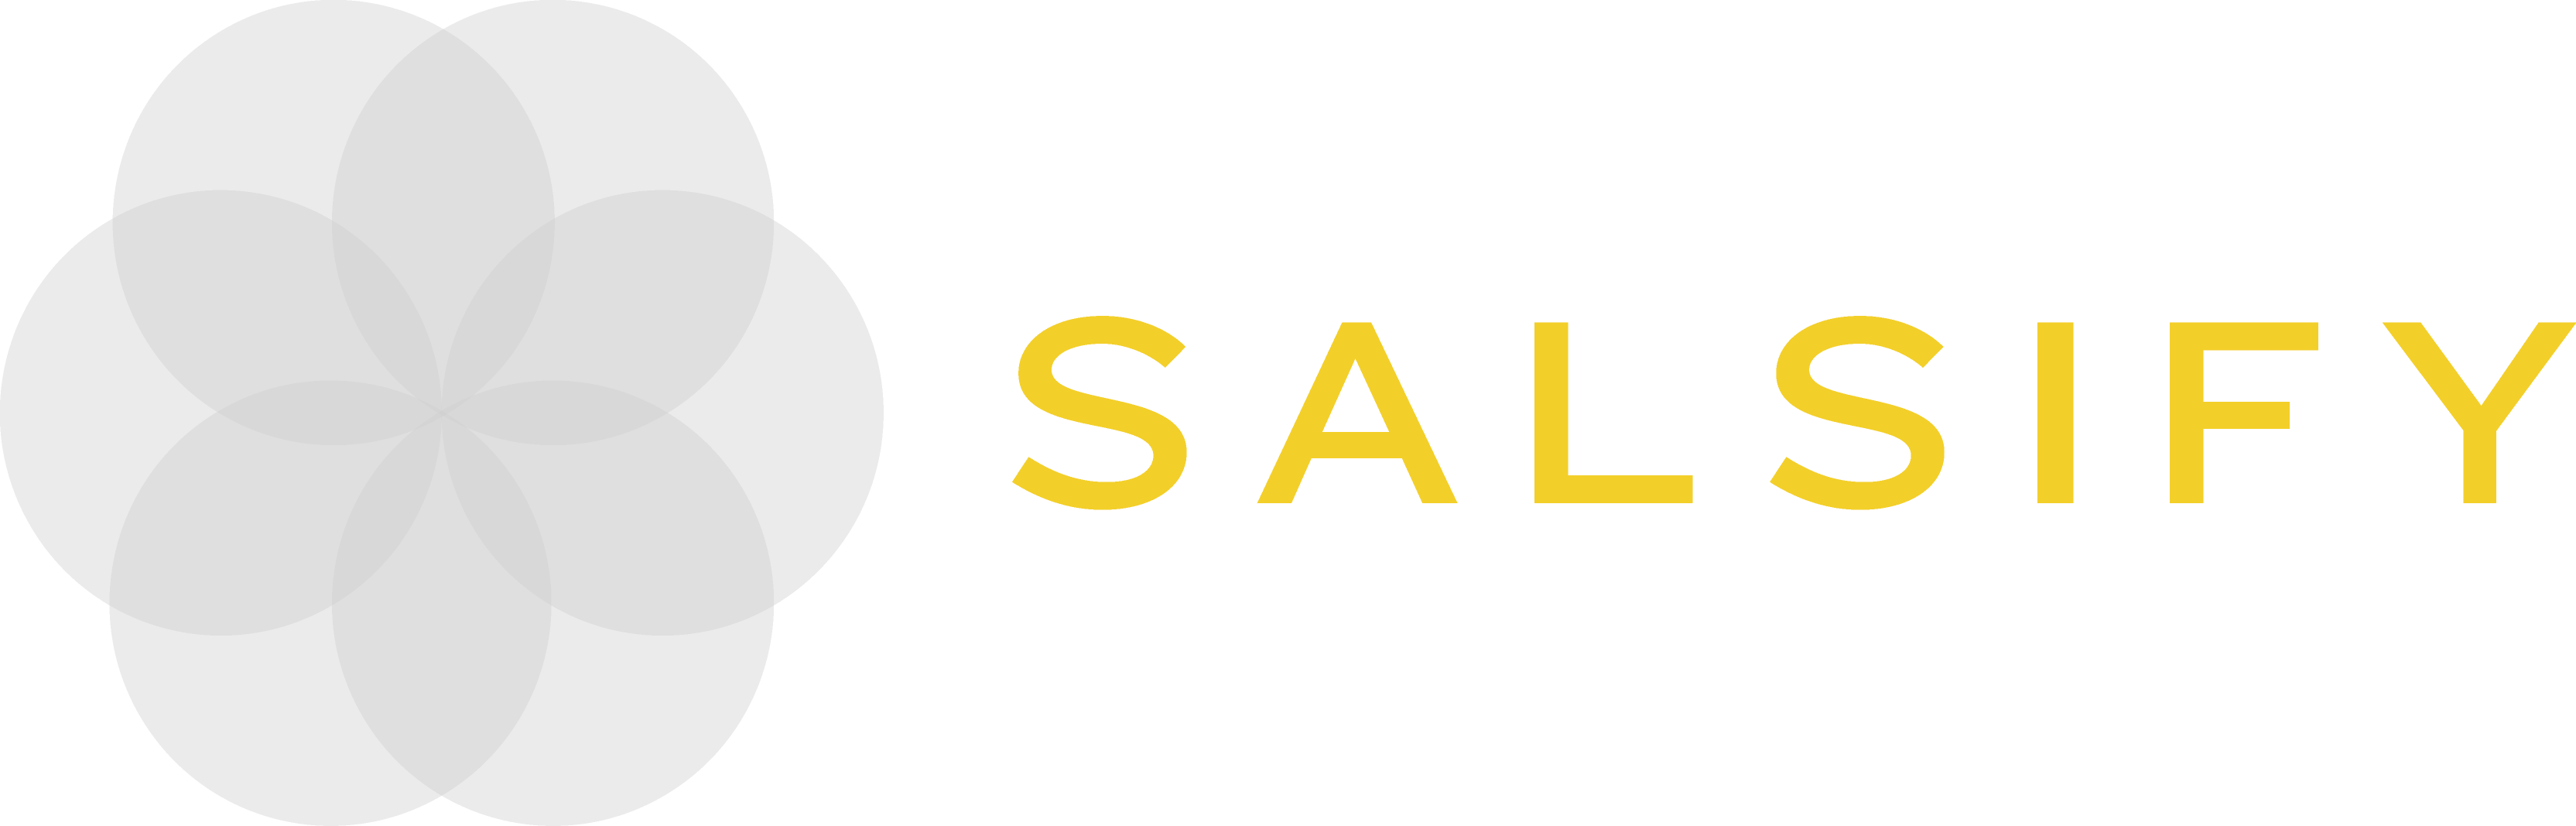 Salsify_Gray_and_Yellow_logo